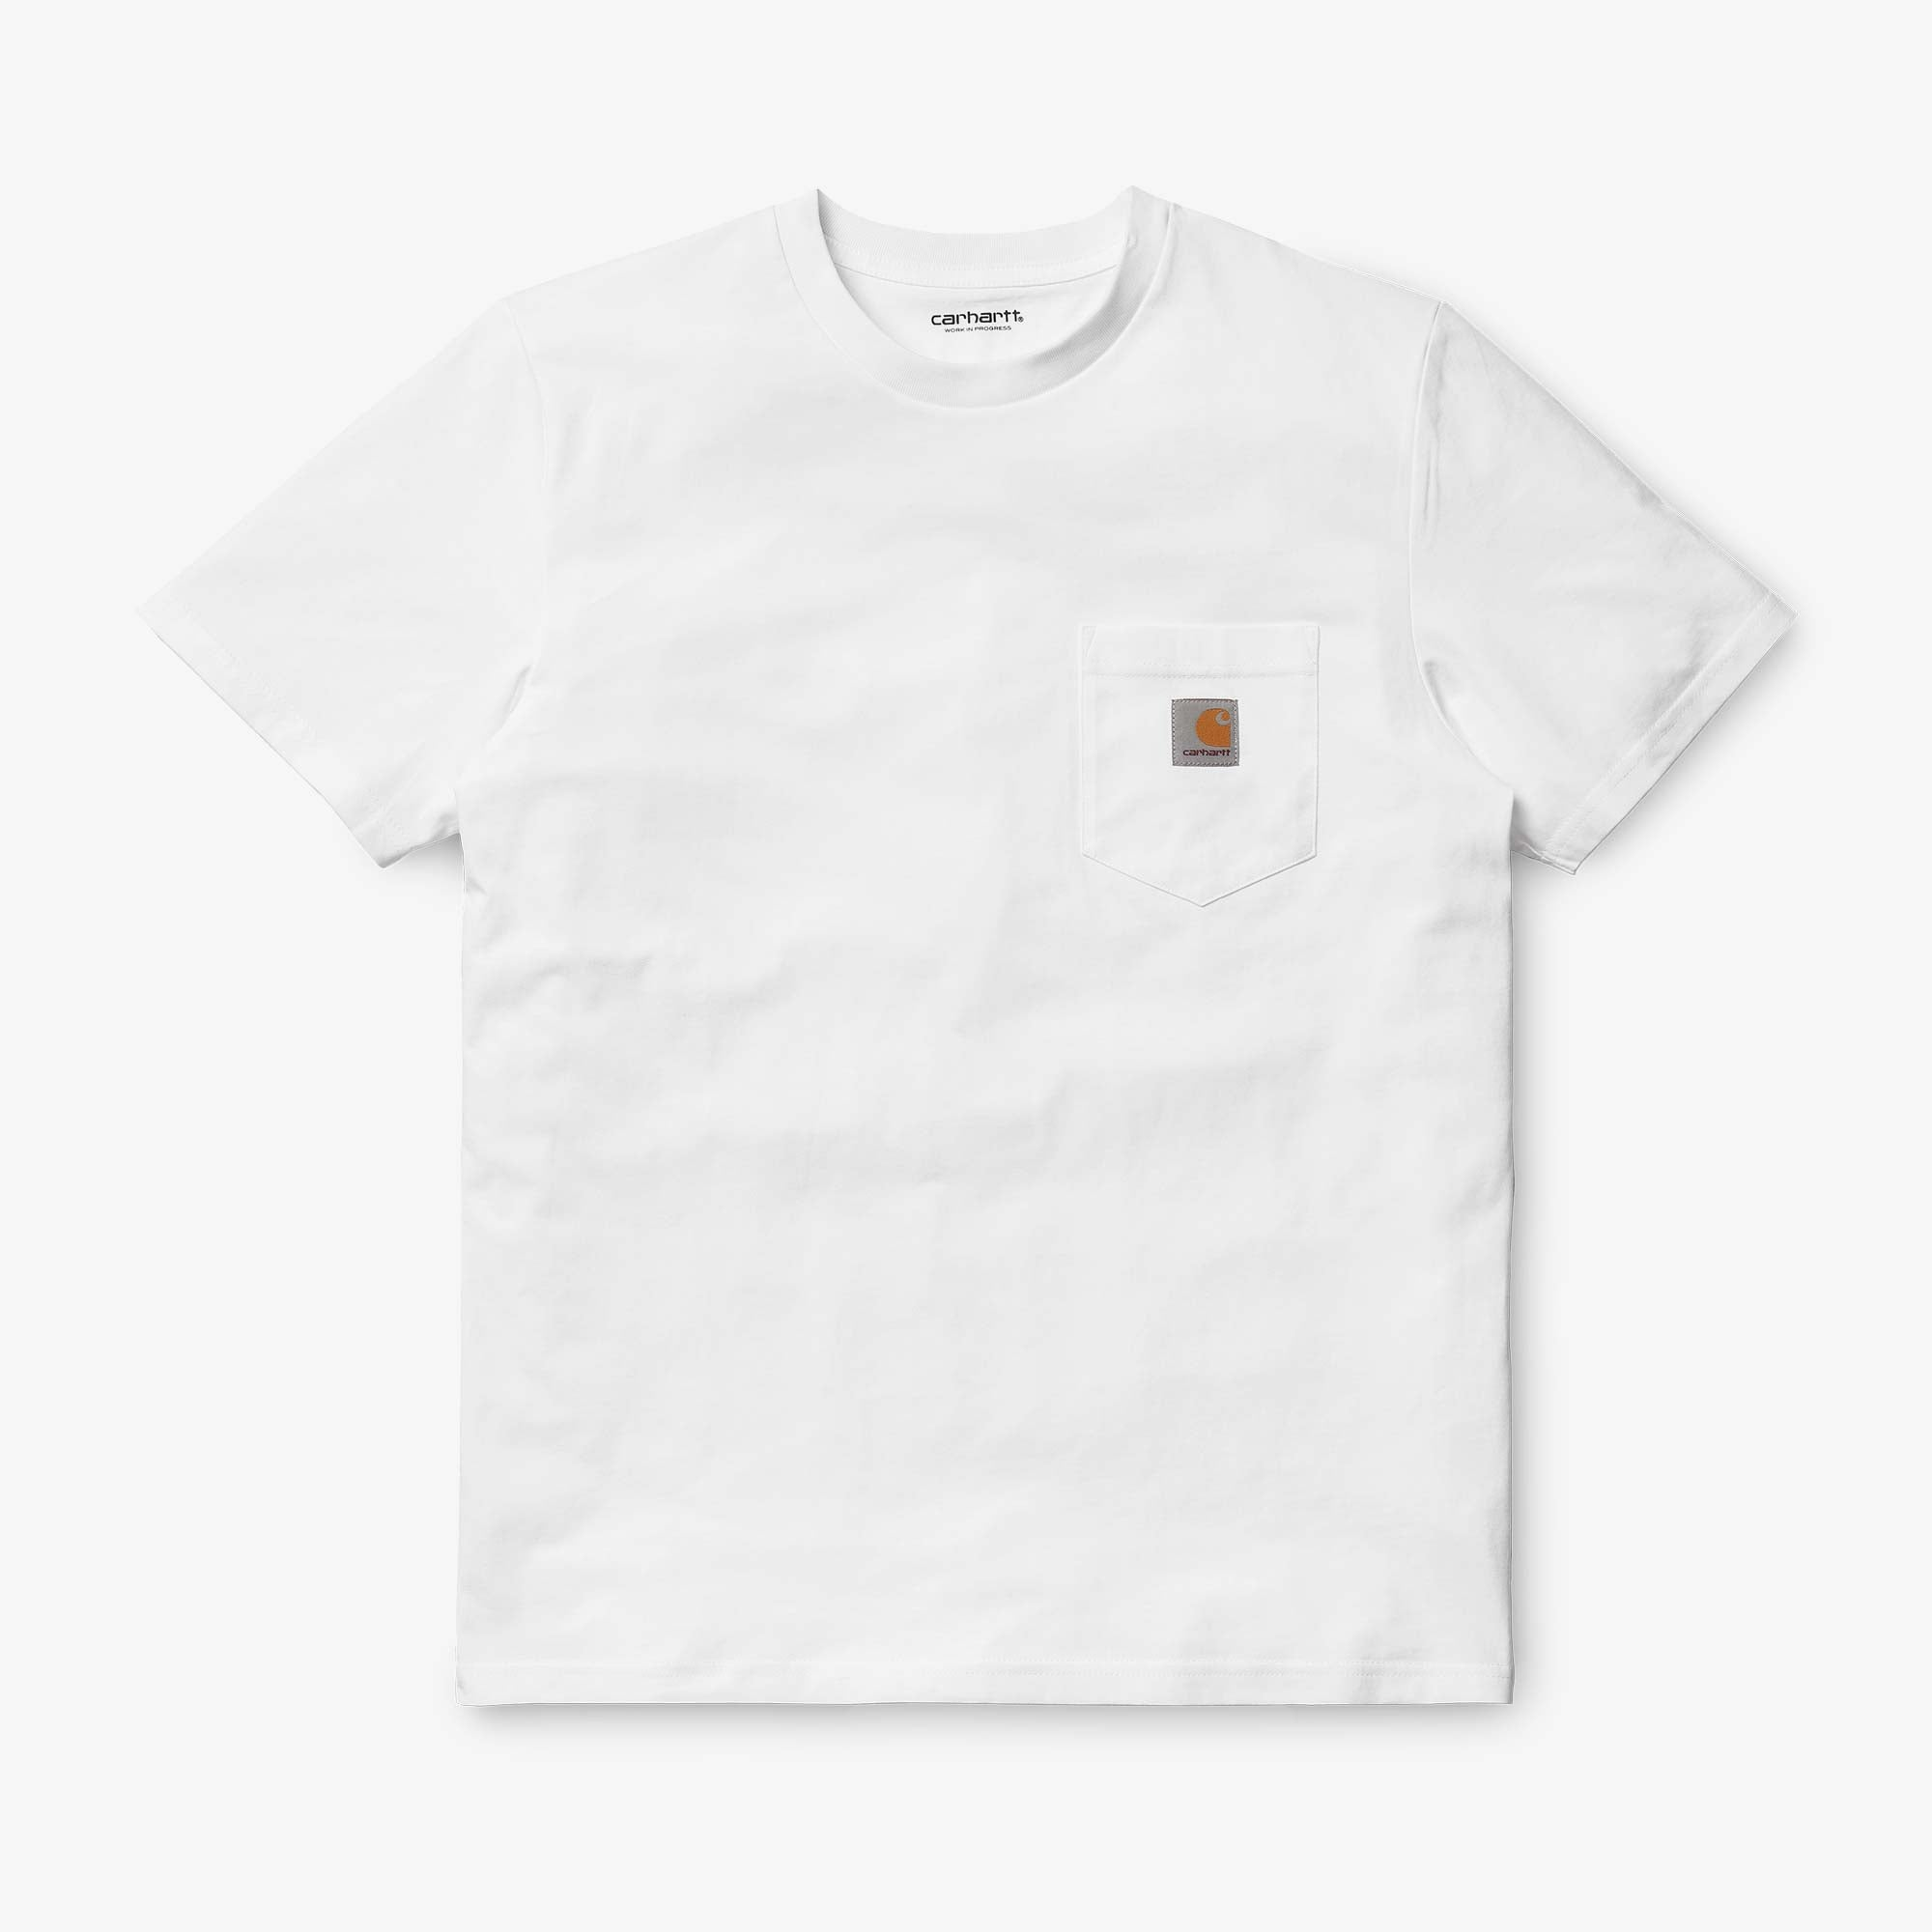 Carhartt WIP S/S Pocket Tee - White 1